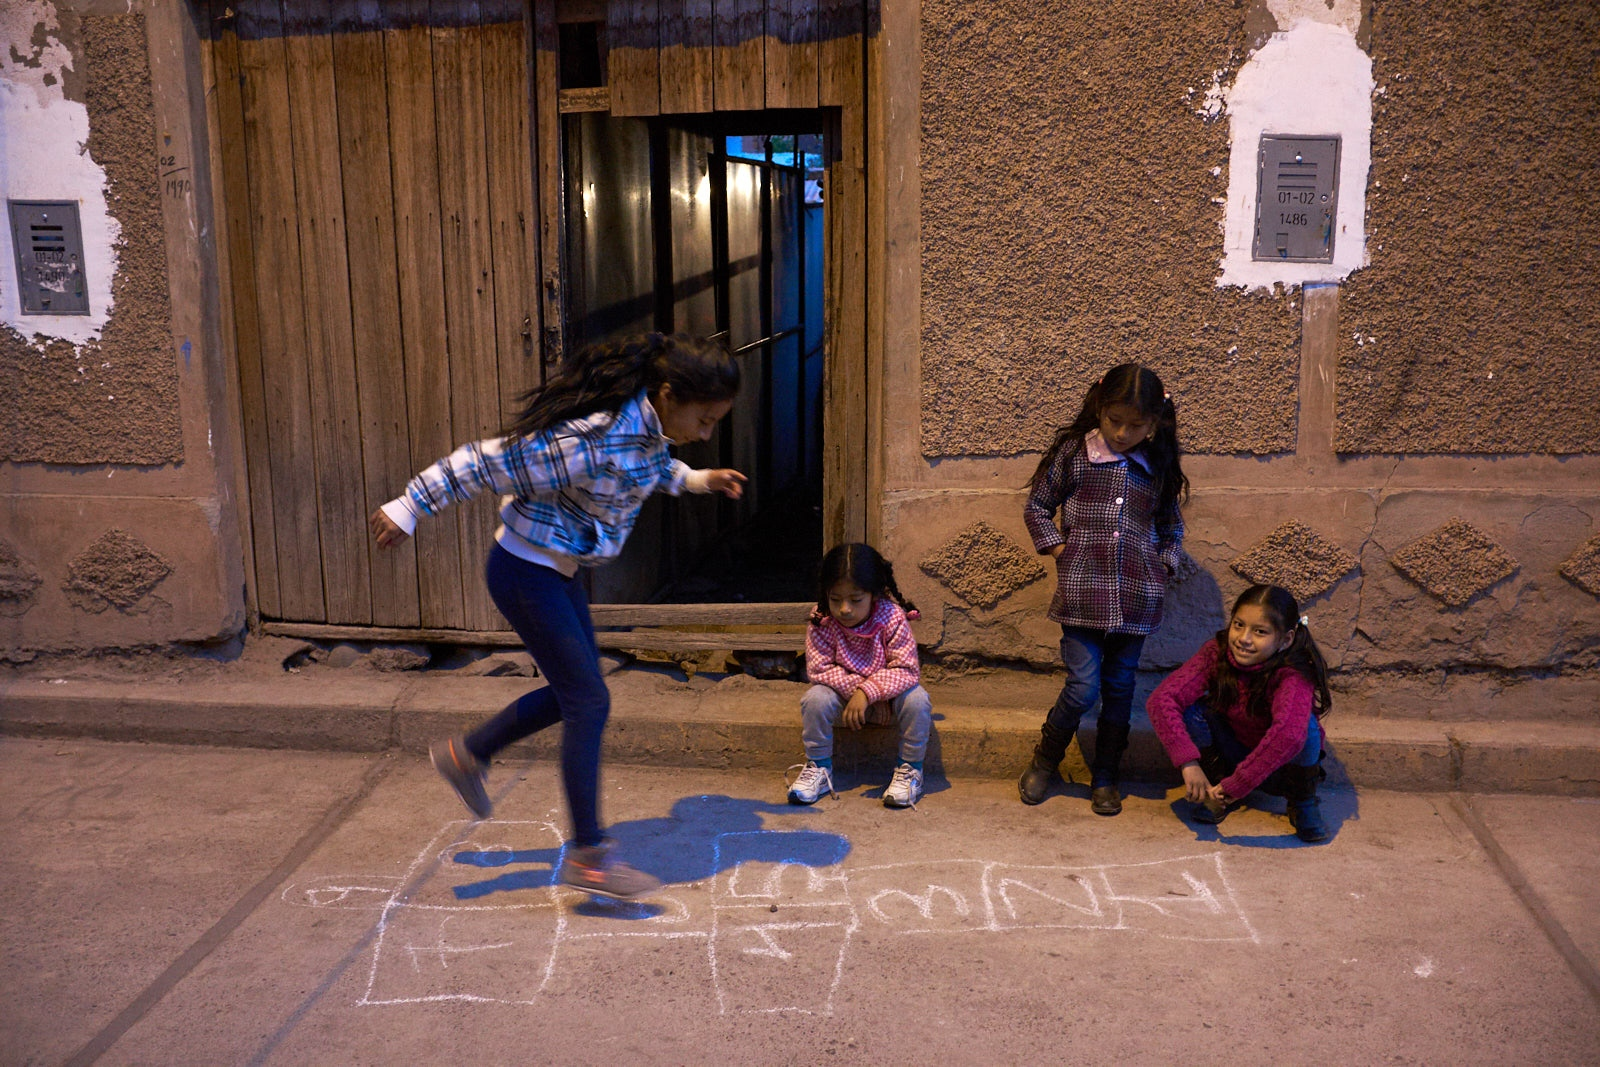 Young girls playing hopscotch in the street, Calca, Peru.